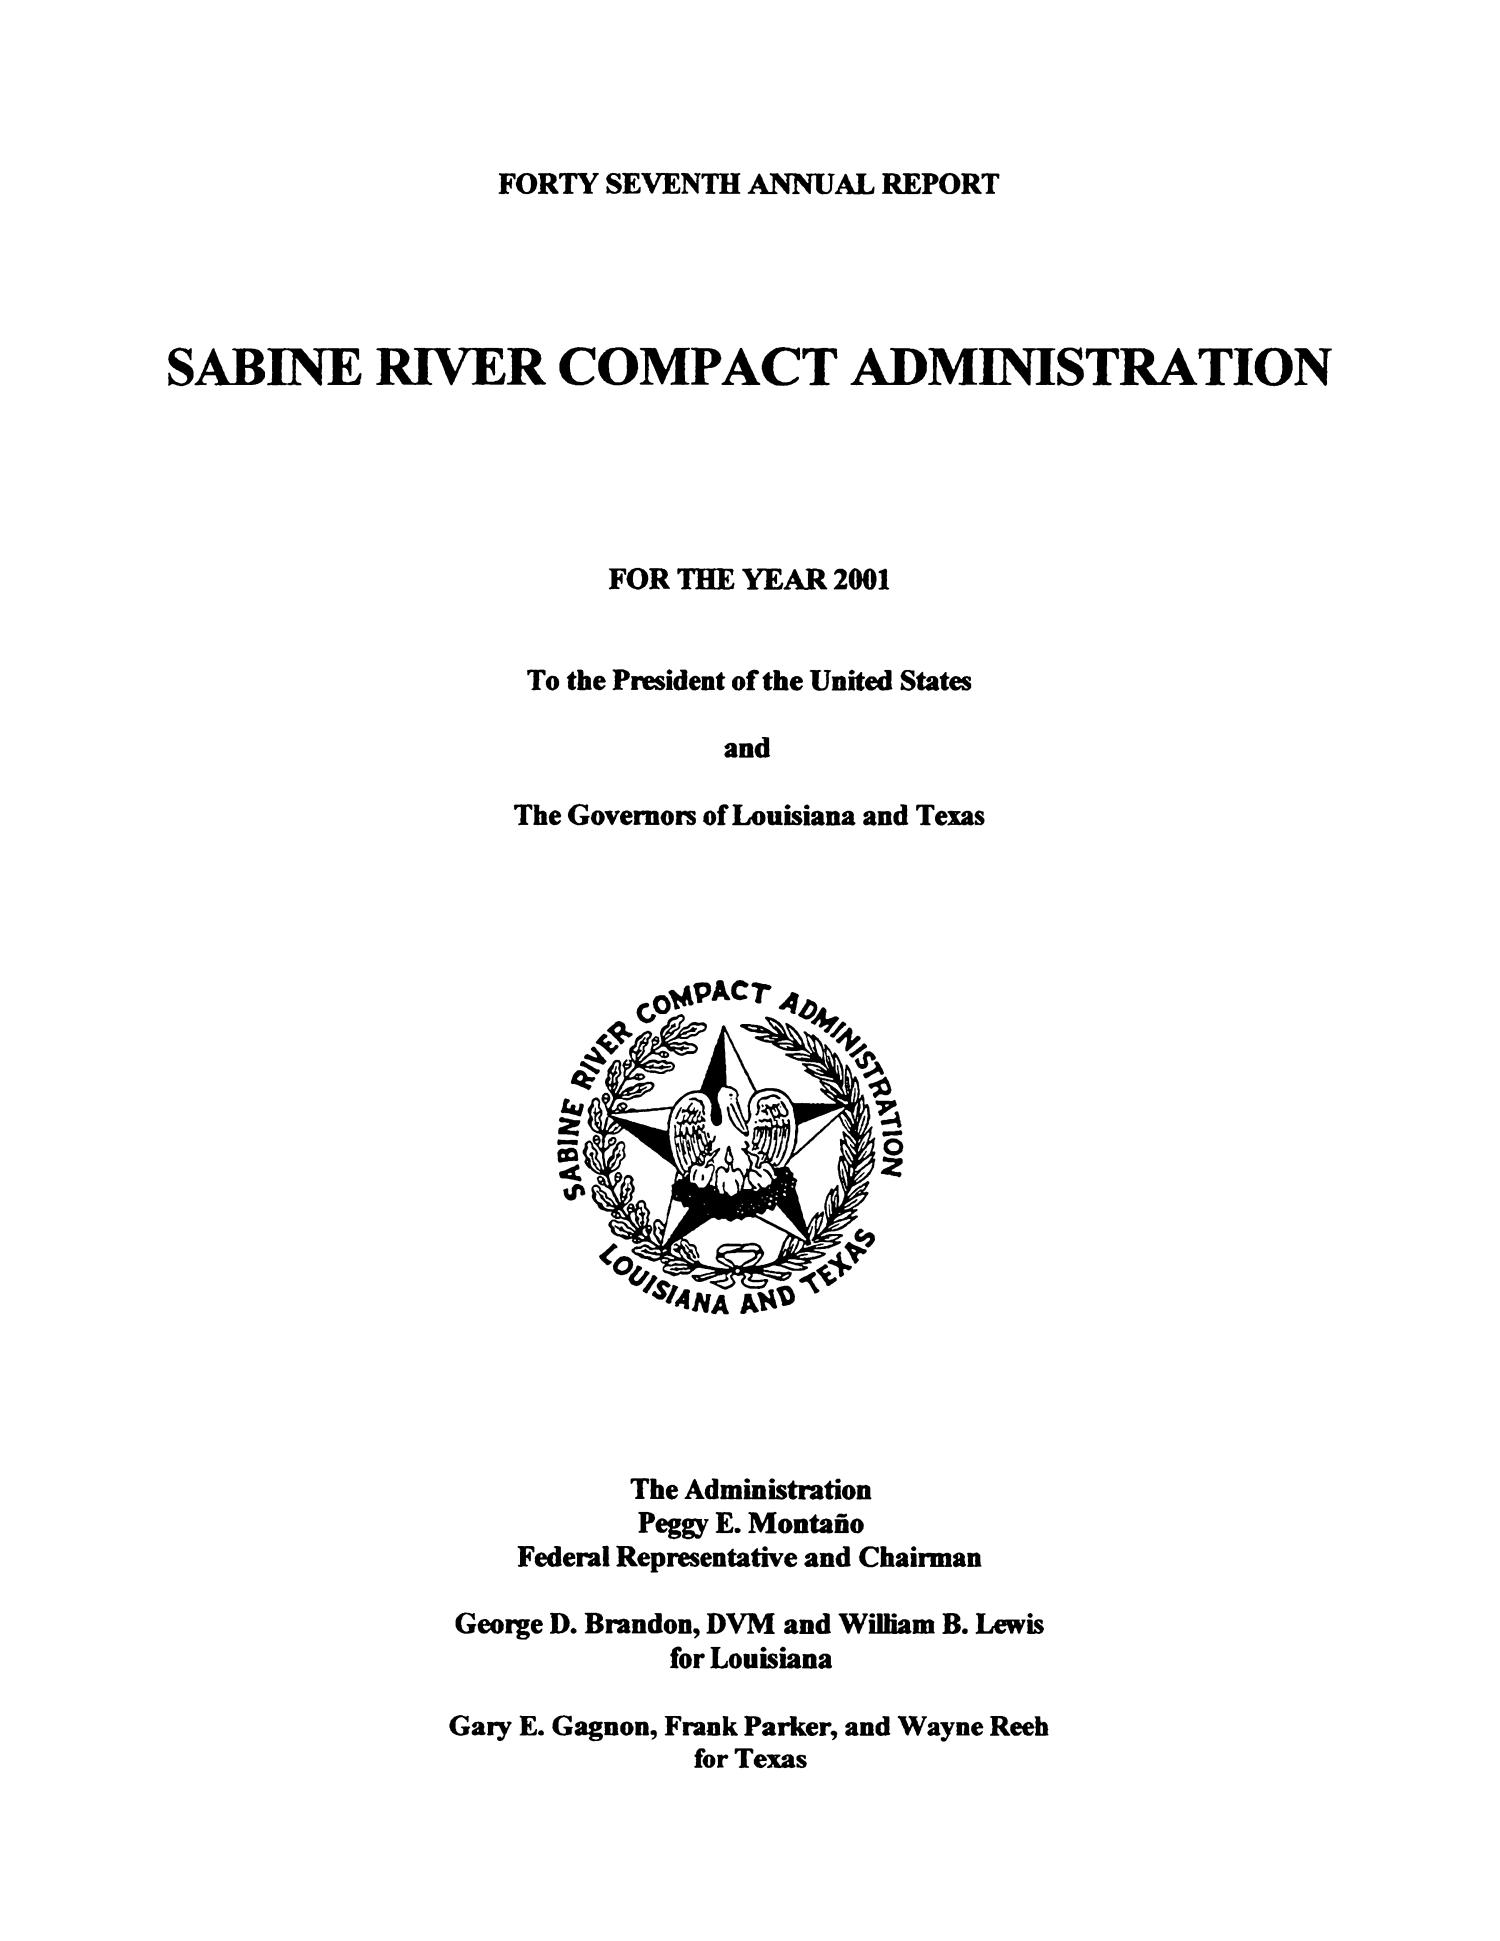 Sabine River Compact Administration Annual Report: 2001                                                                                                      I